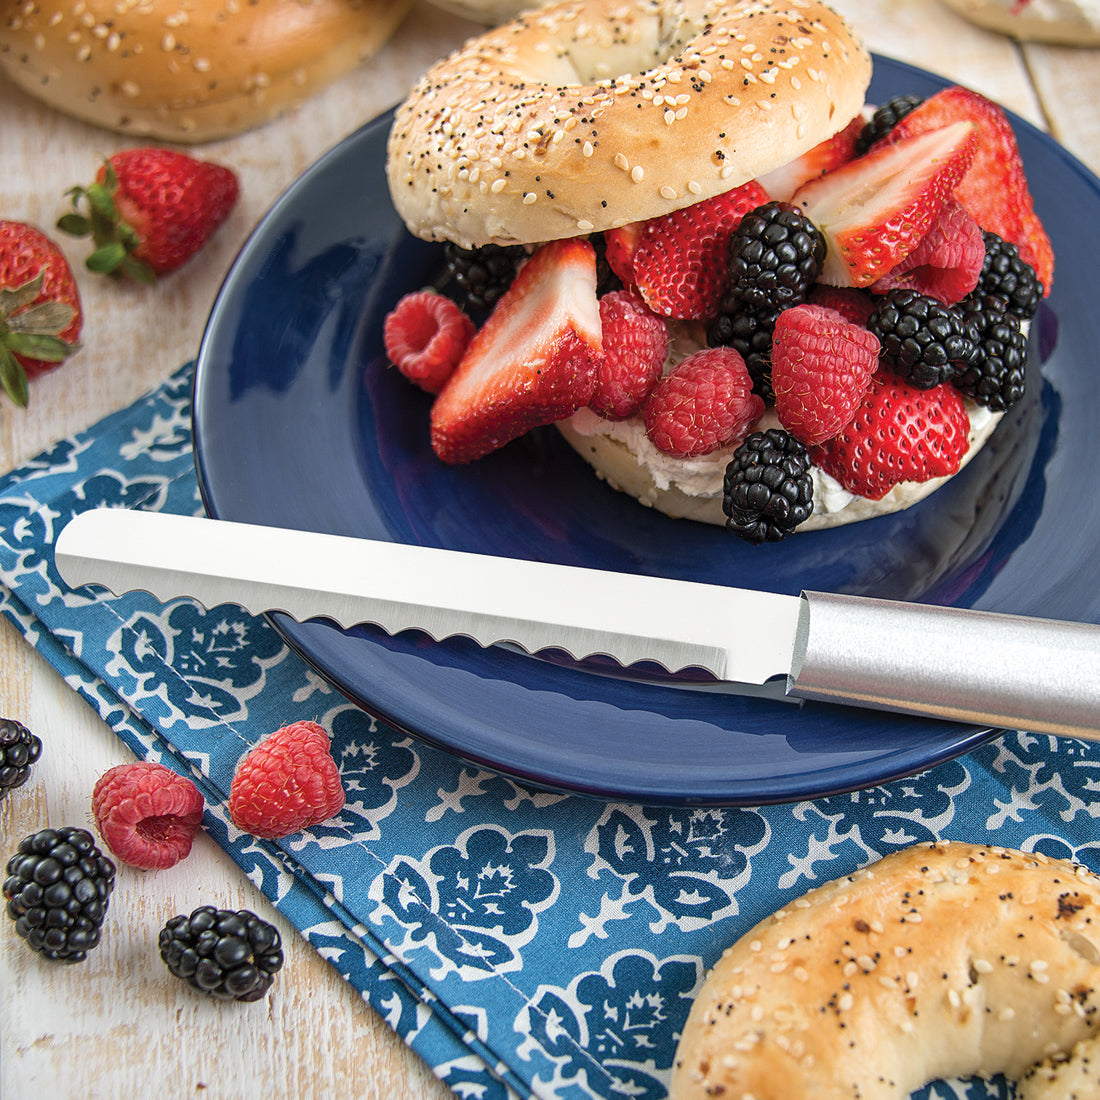 Bagel Knife in front of a fruit-filled bagel